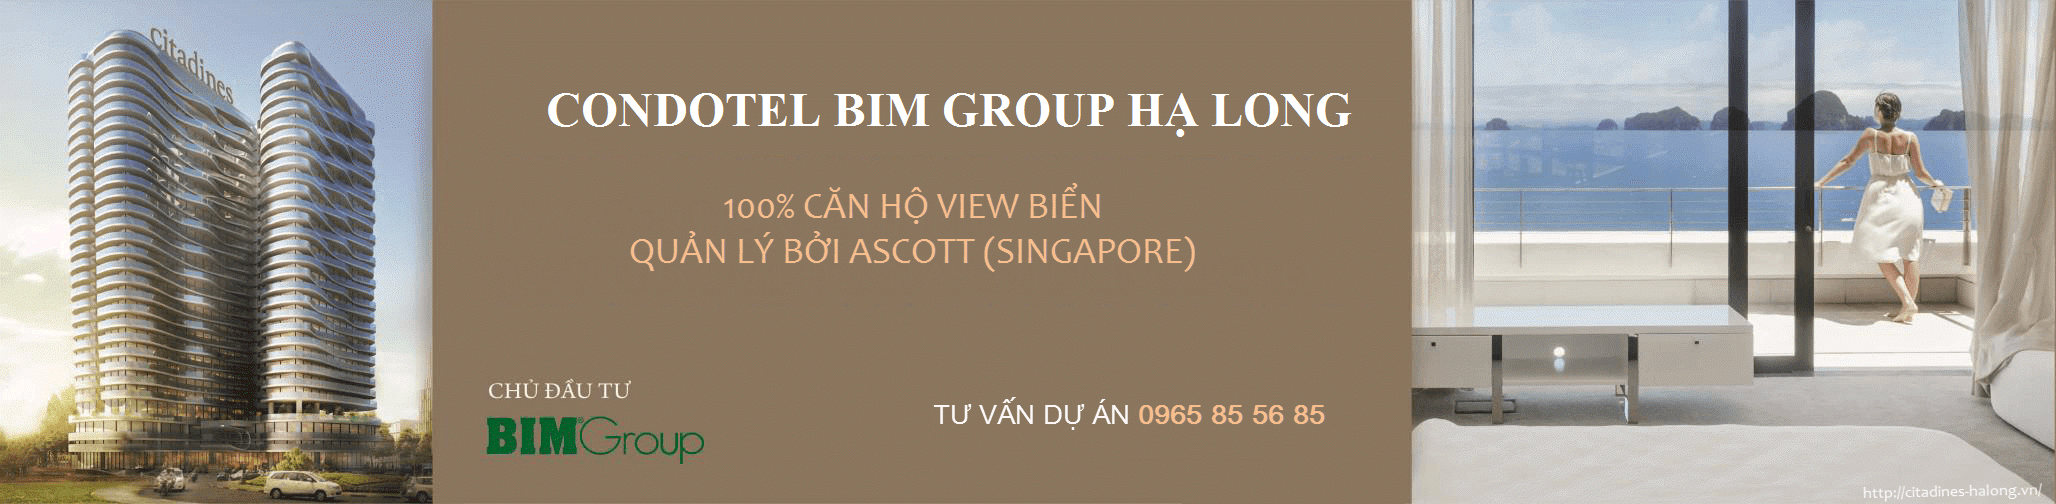 CONDOTEL BIM GROUP HẠ LONG 1